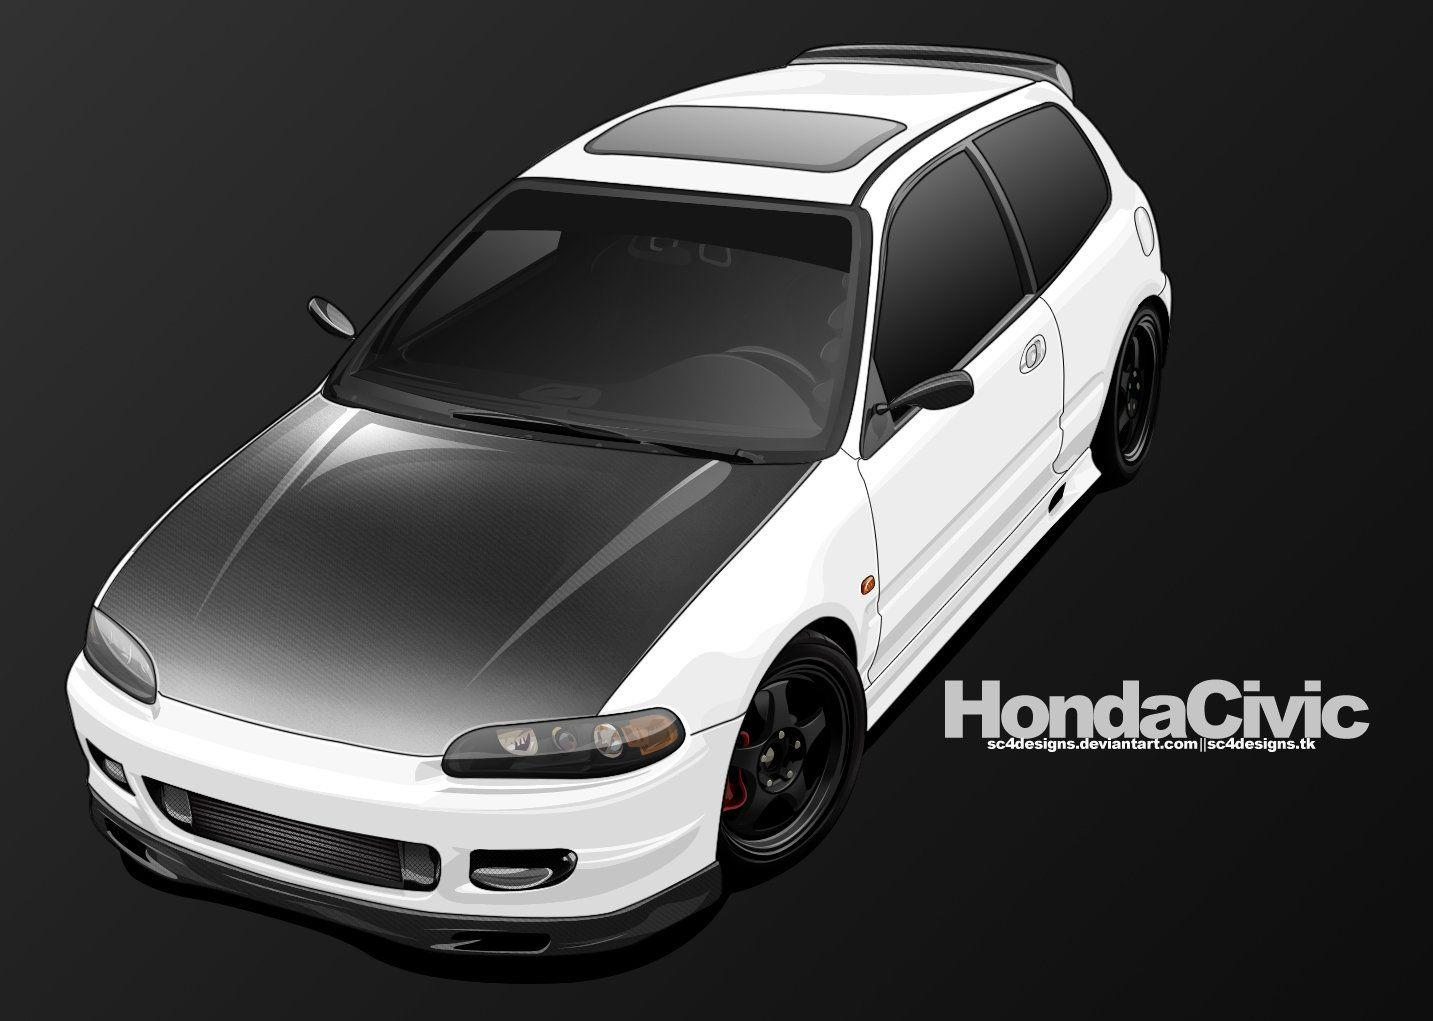 Honda Civic Toon by sc4designs